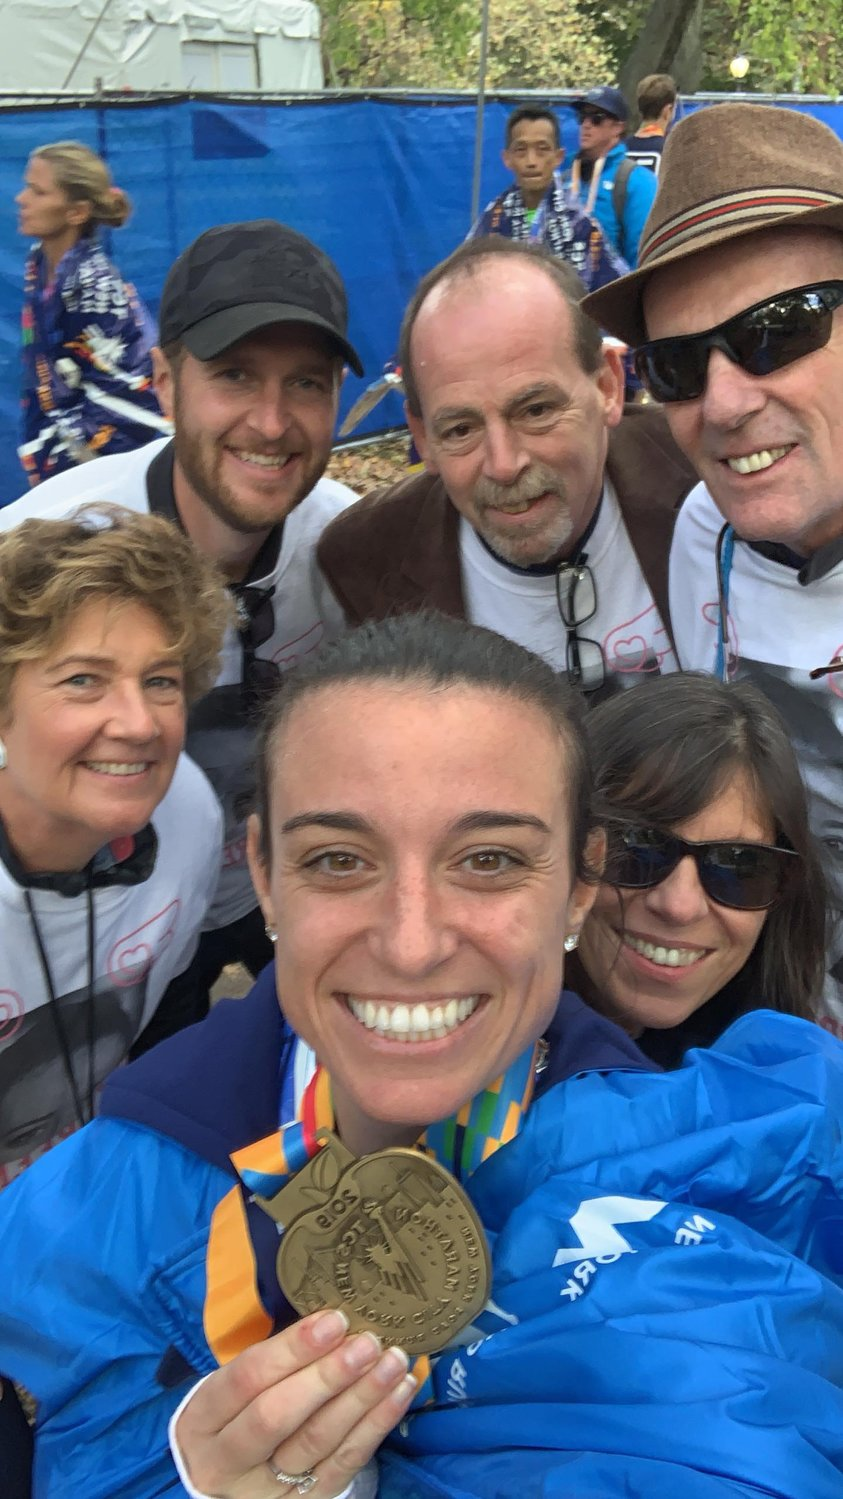 Loreen Lawrence ran the New York City Marathon to support the Katie McBride Foundation